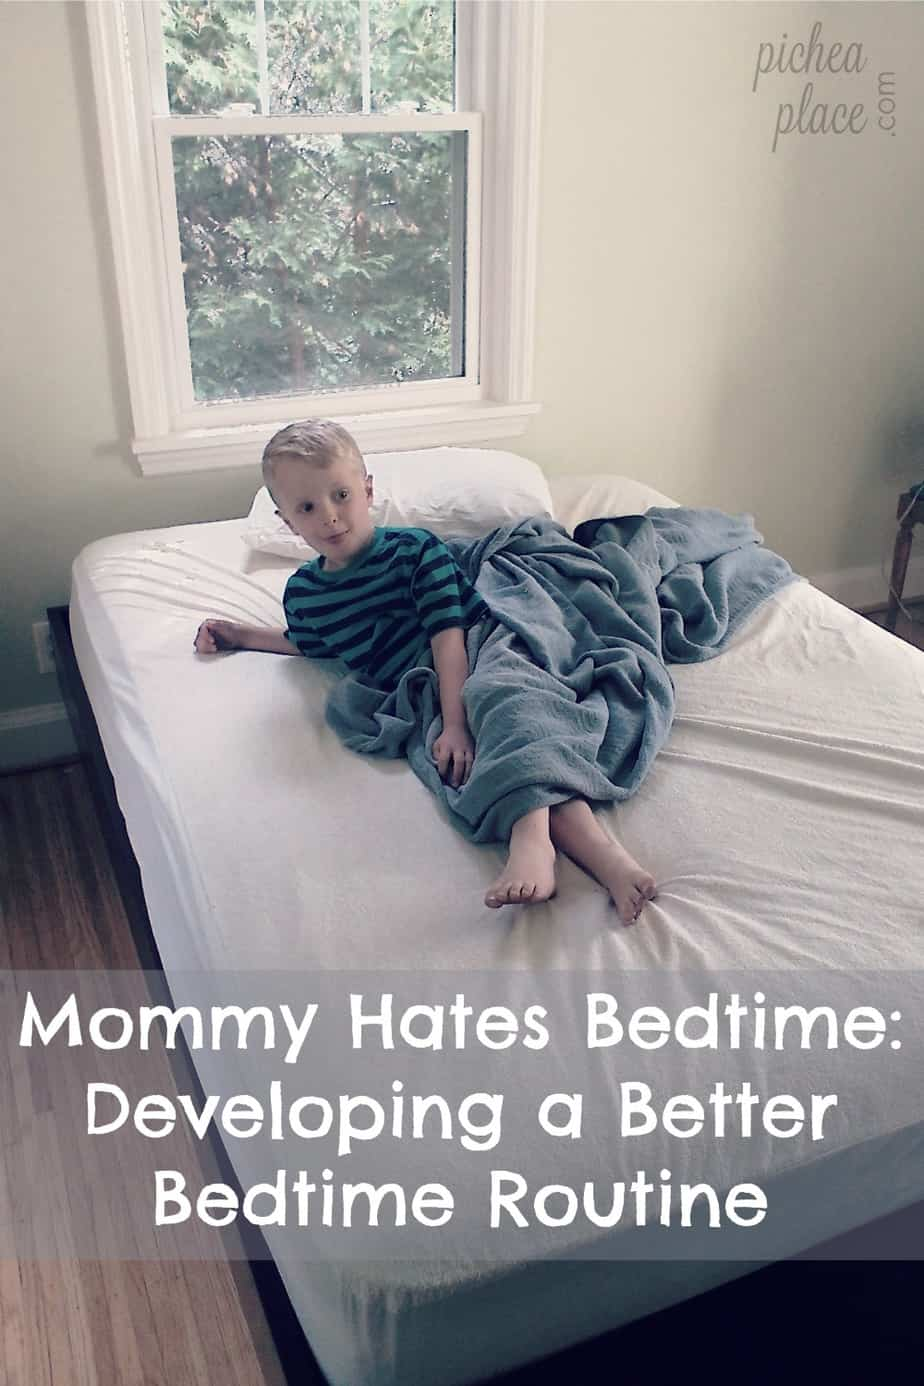 Mommy Hates Bedtime: Developing a Better Bedtime Routine (with free printable bedtime routine chart)